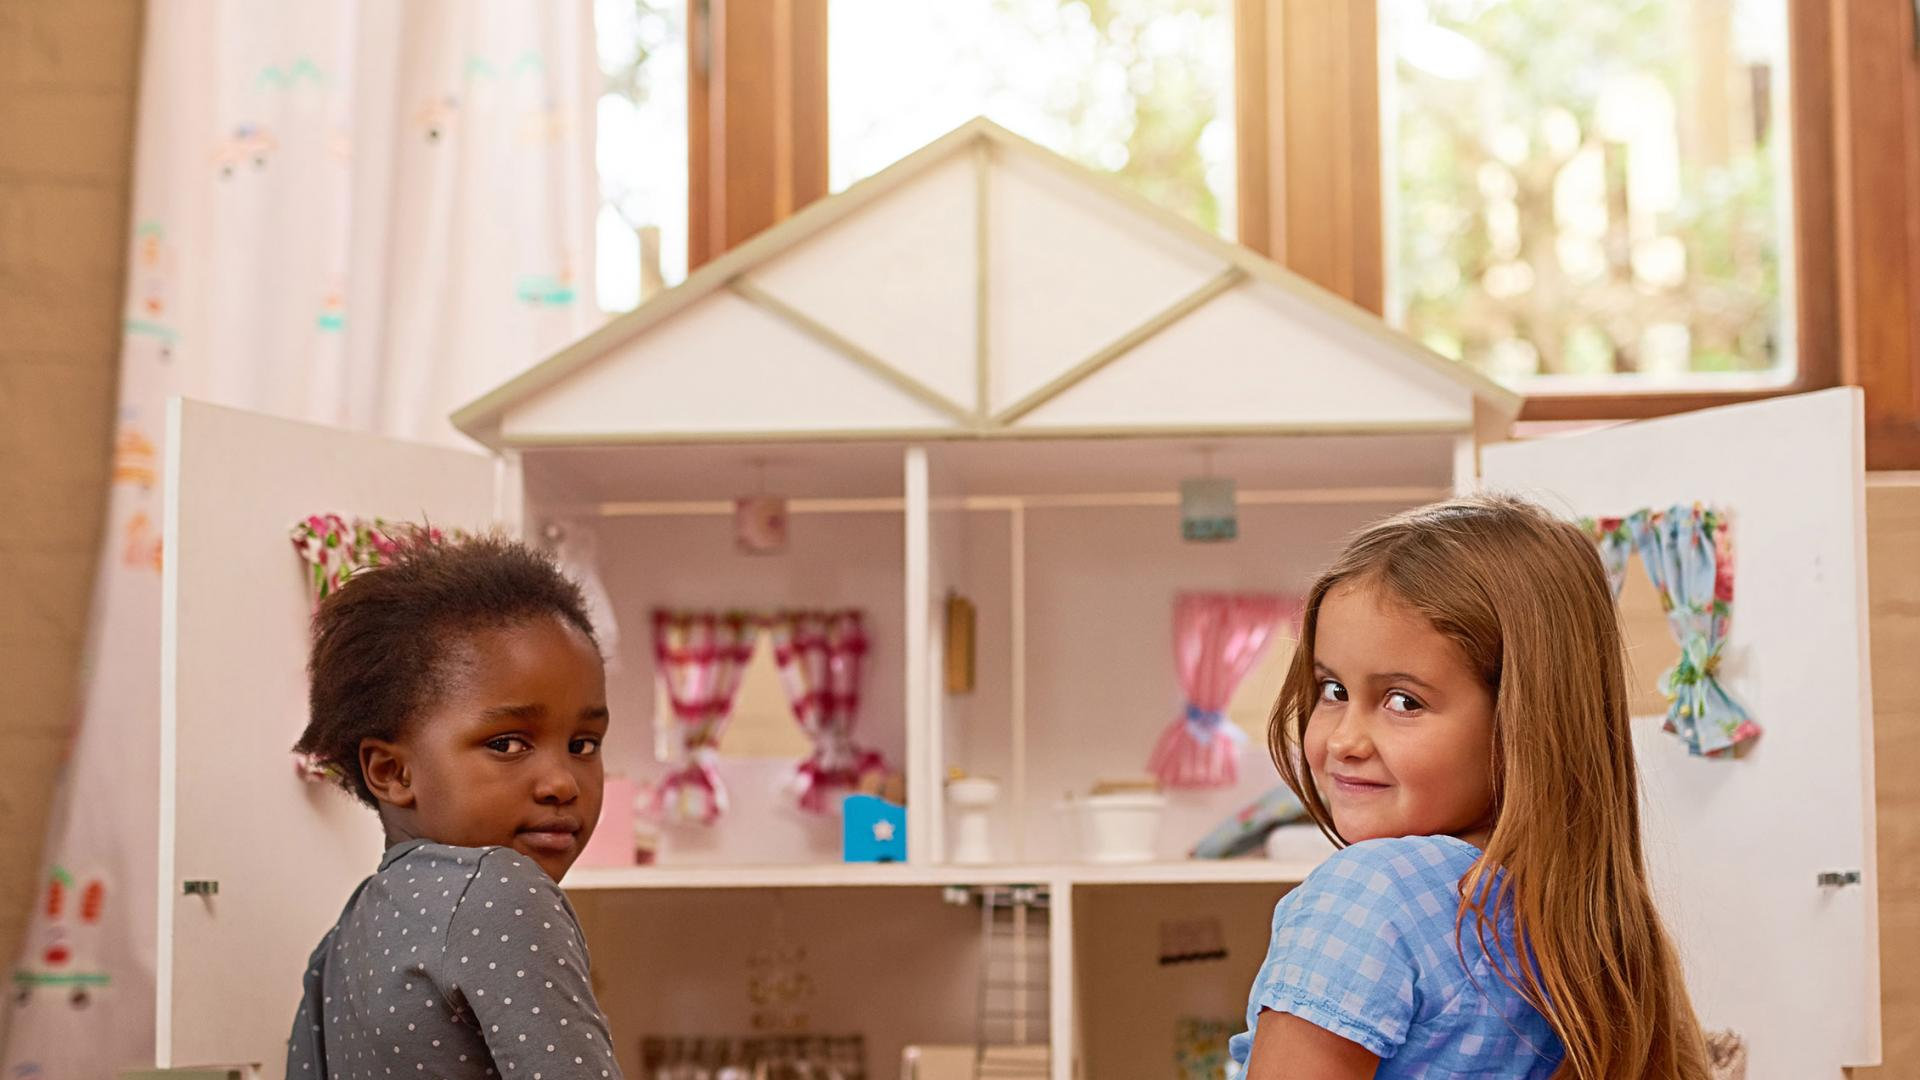 two girls sitting in front of an open dollhouse in front of a window